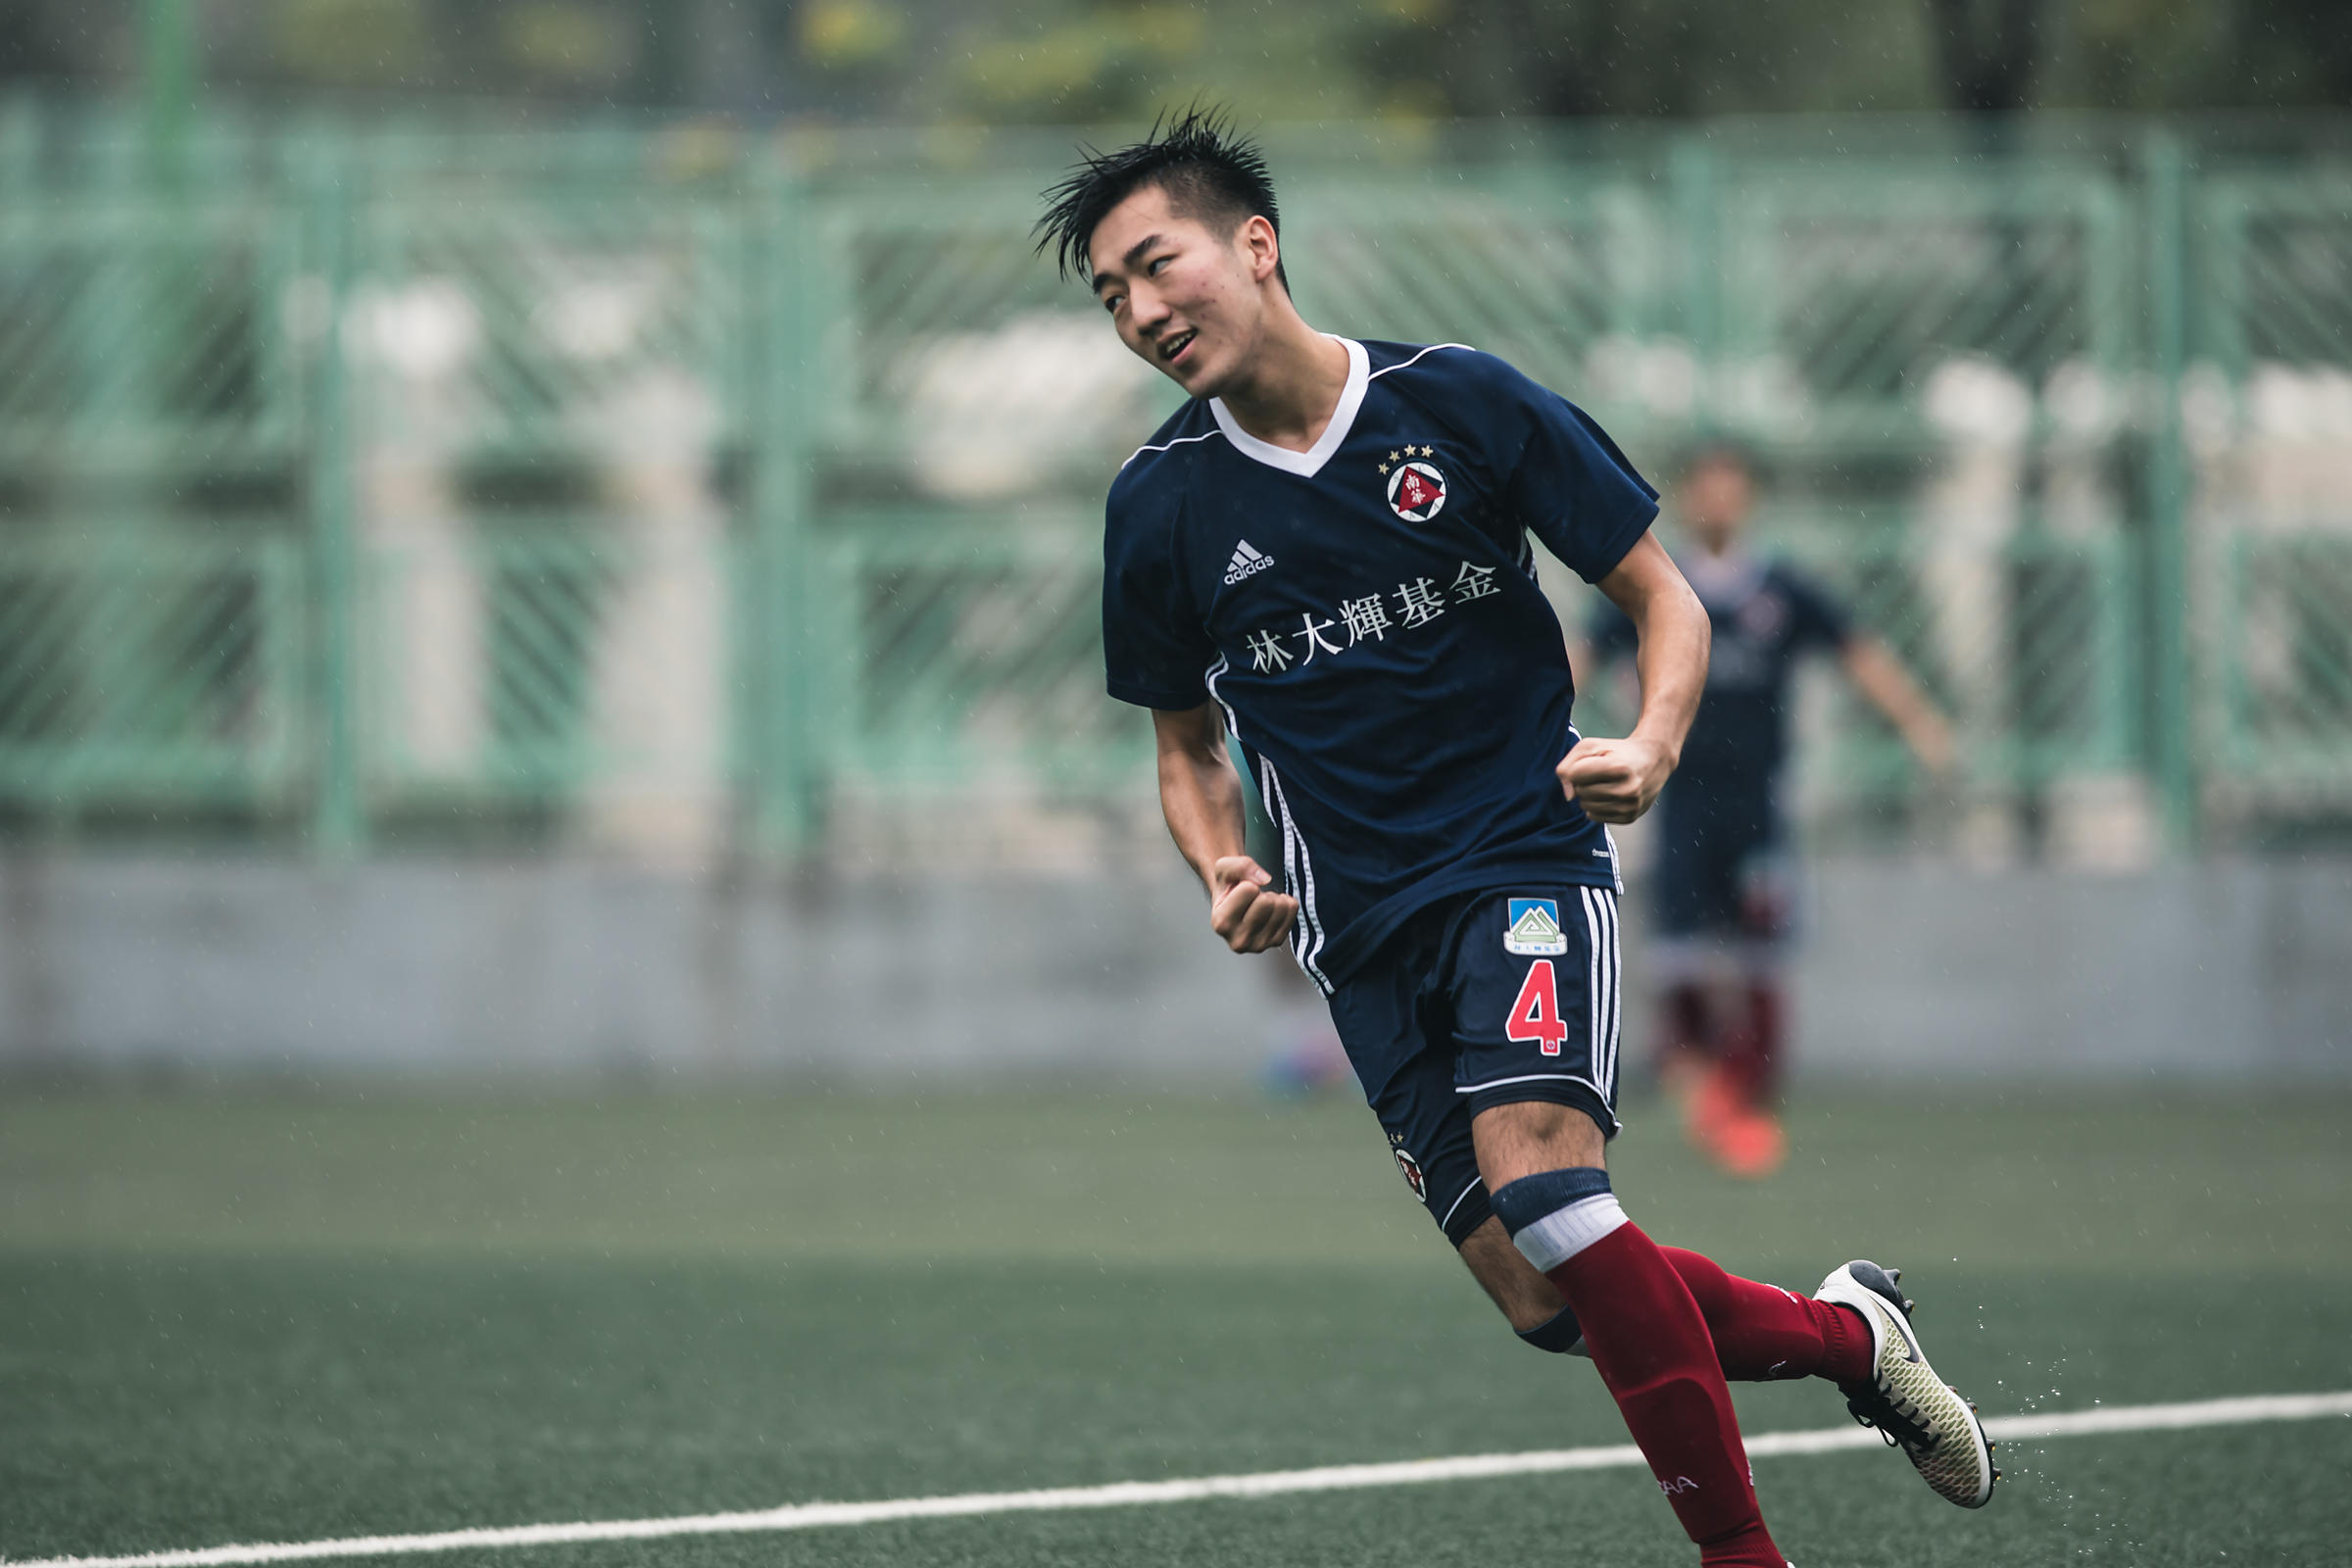 Hong Kong Football 1st division league Week 11 Sha Tin 3:2 SCAA on November 12, 2017